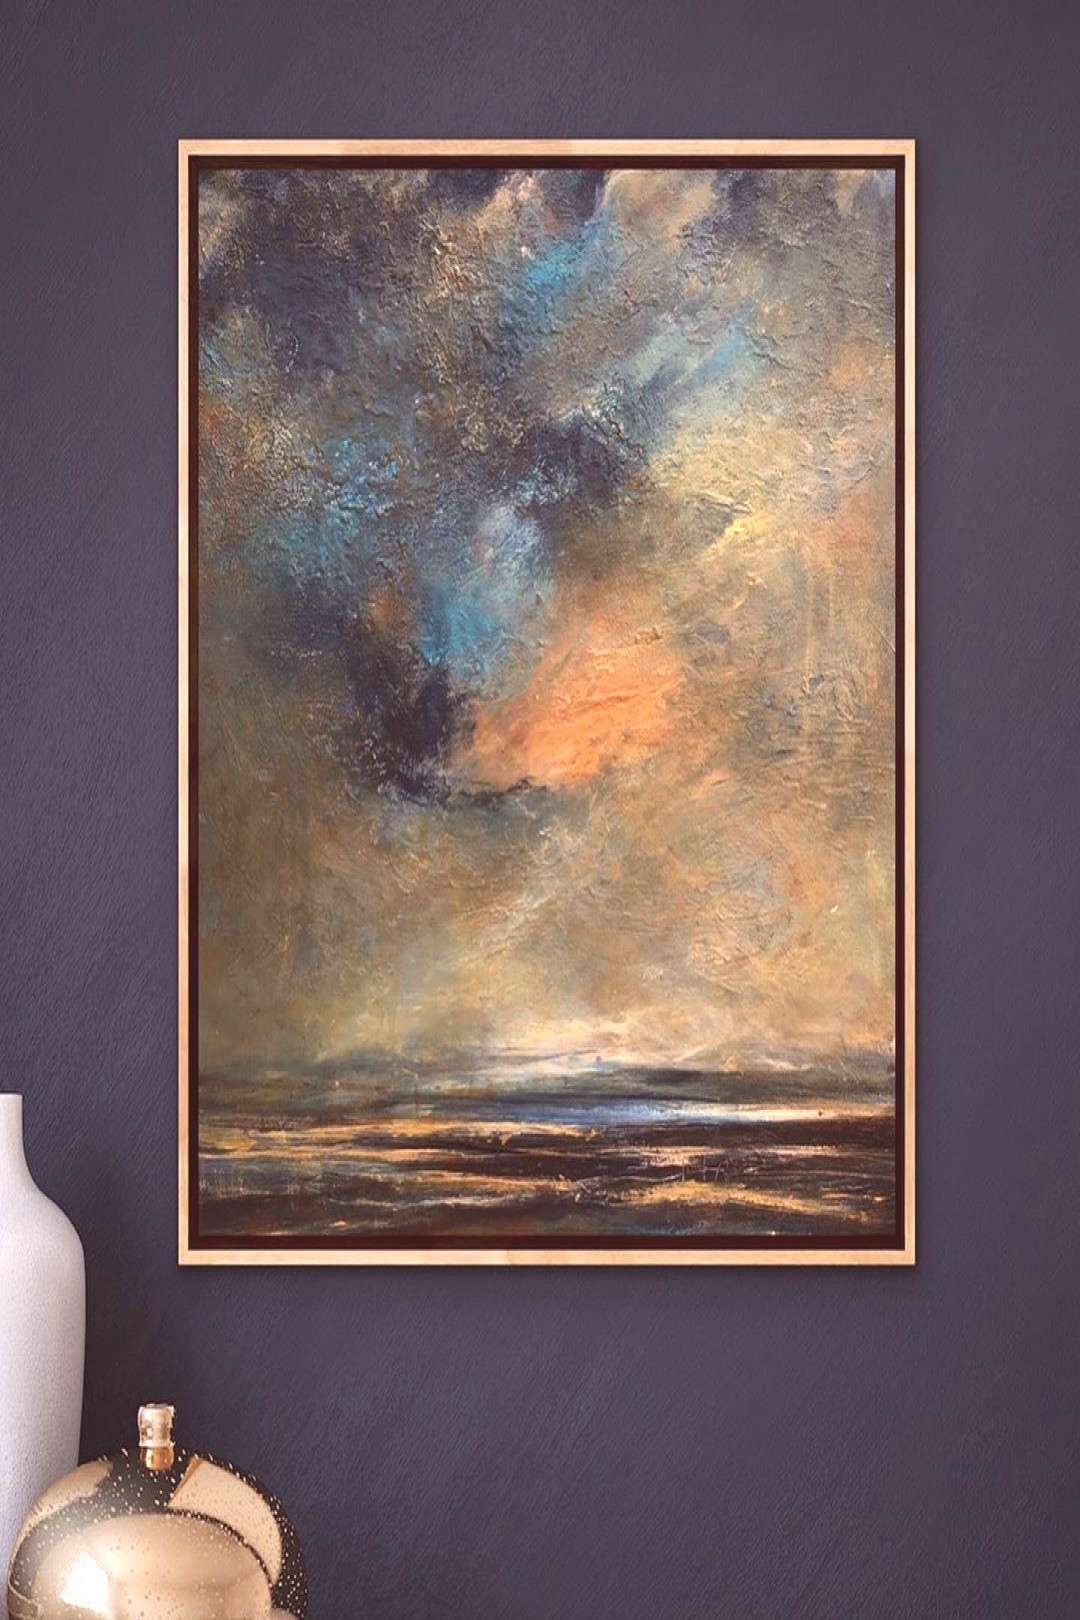 Sea spray Dawn. This piece is captured memory from an early morni